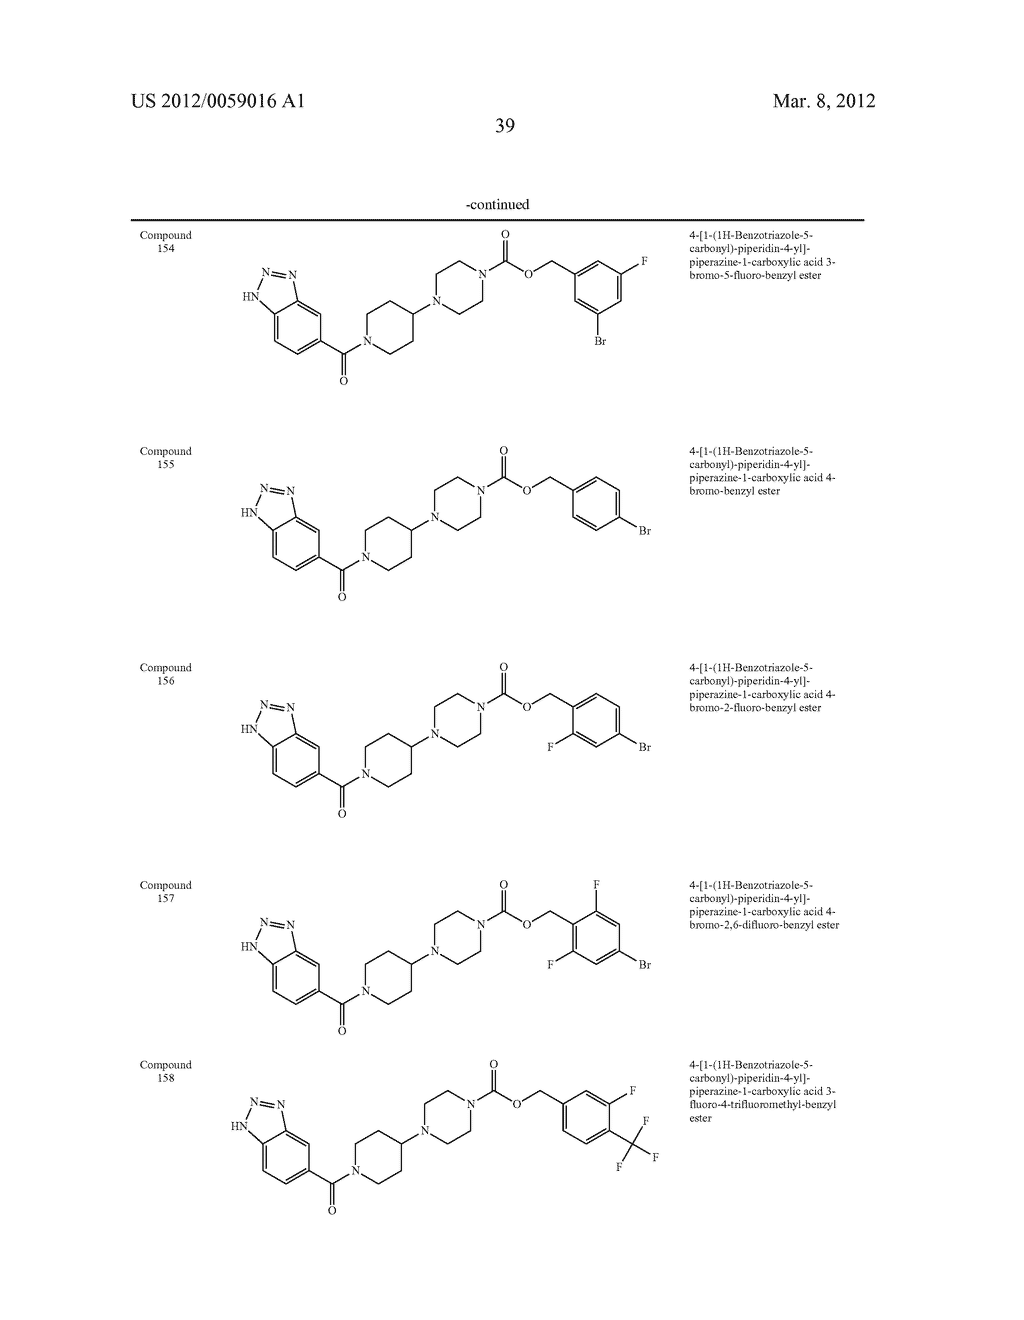 PIPERIDINE AND PIPERAZINE DERIVATIVES AS AUTOTAXIN INHIBITORS - diagram, schematic, and image 40